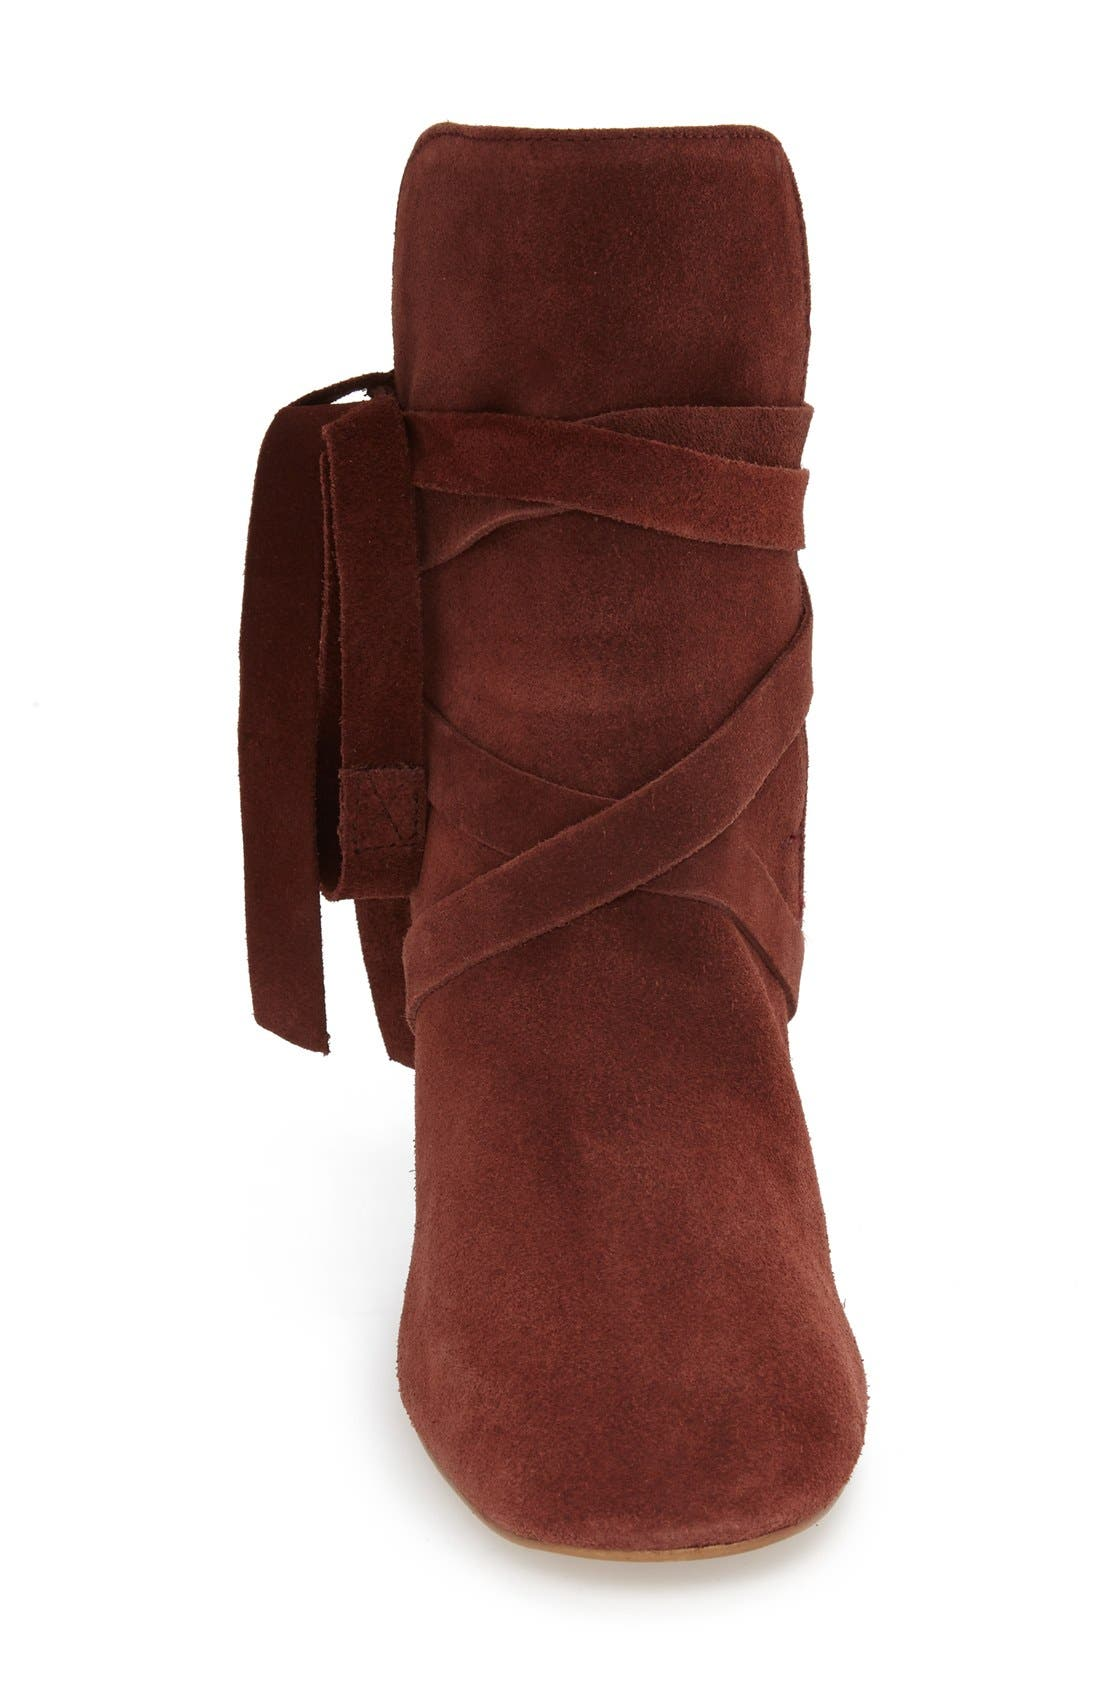 Alternate Image 3  - Topshop 'Anabel' Lace-Up Boots (Women)